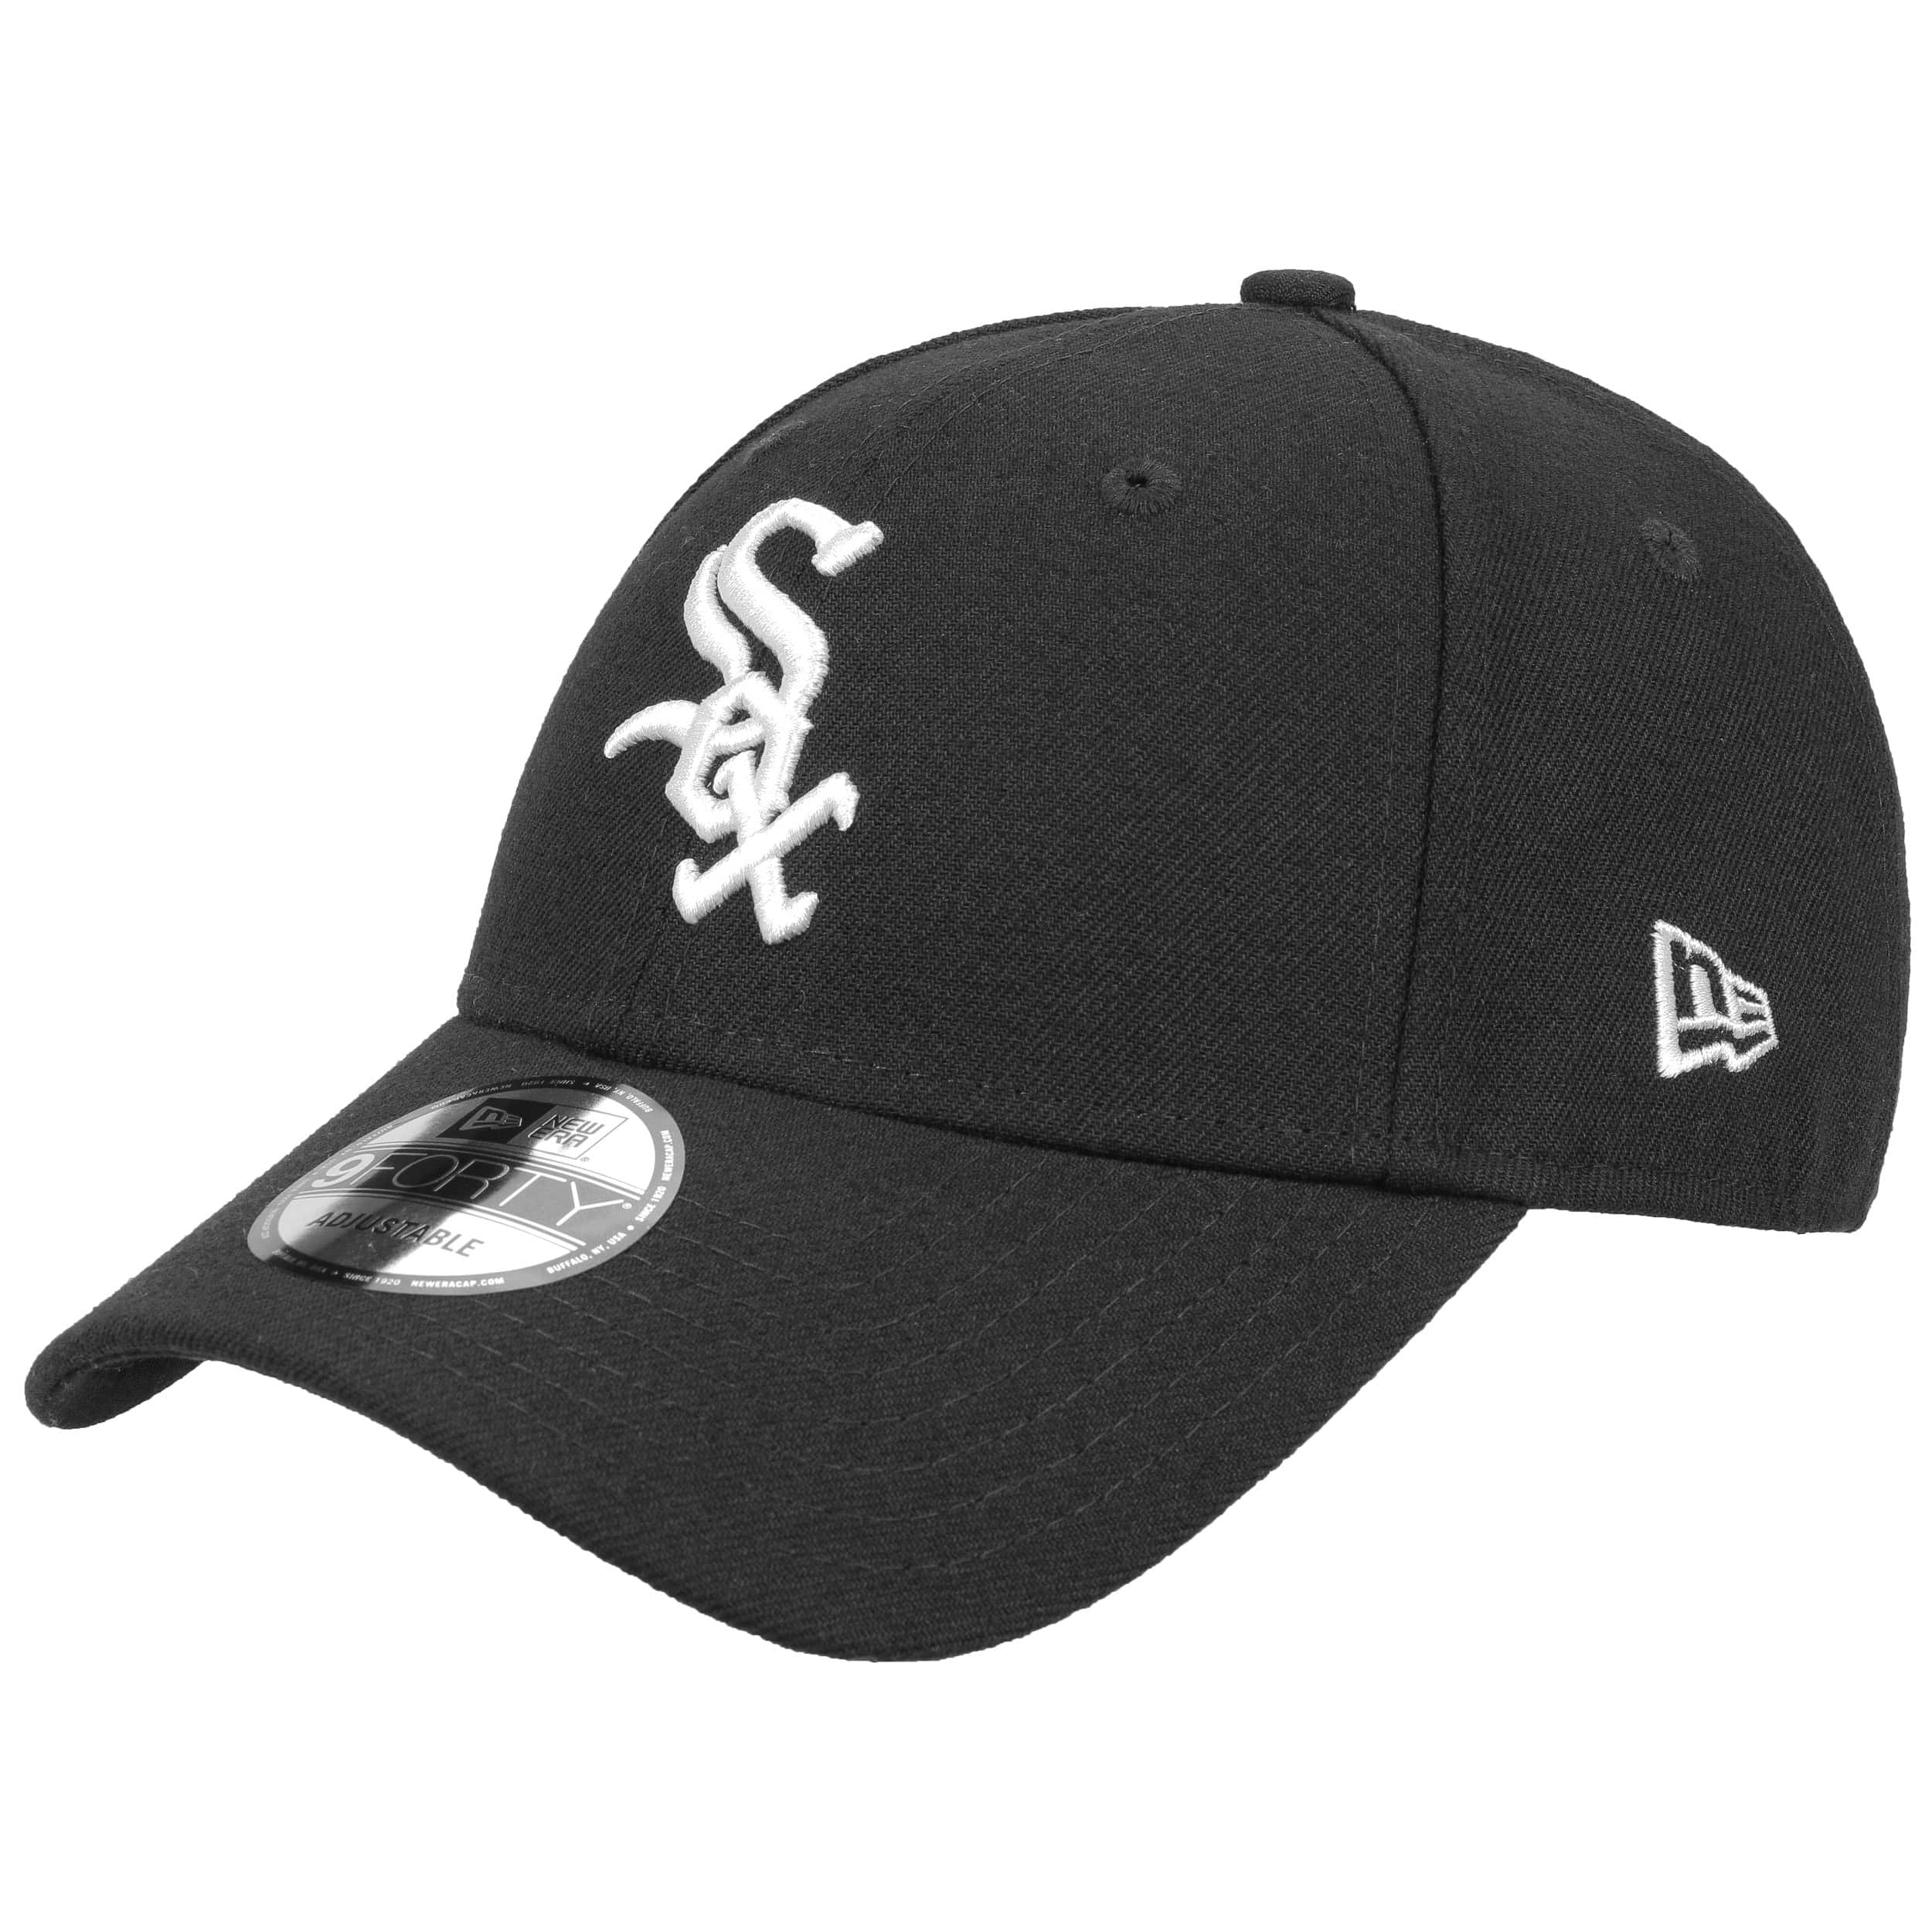 219330c19ee15 9Forty The League White Sox Cap by New Era, GBP 17,95 --  Hats, caps ...